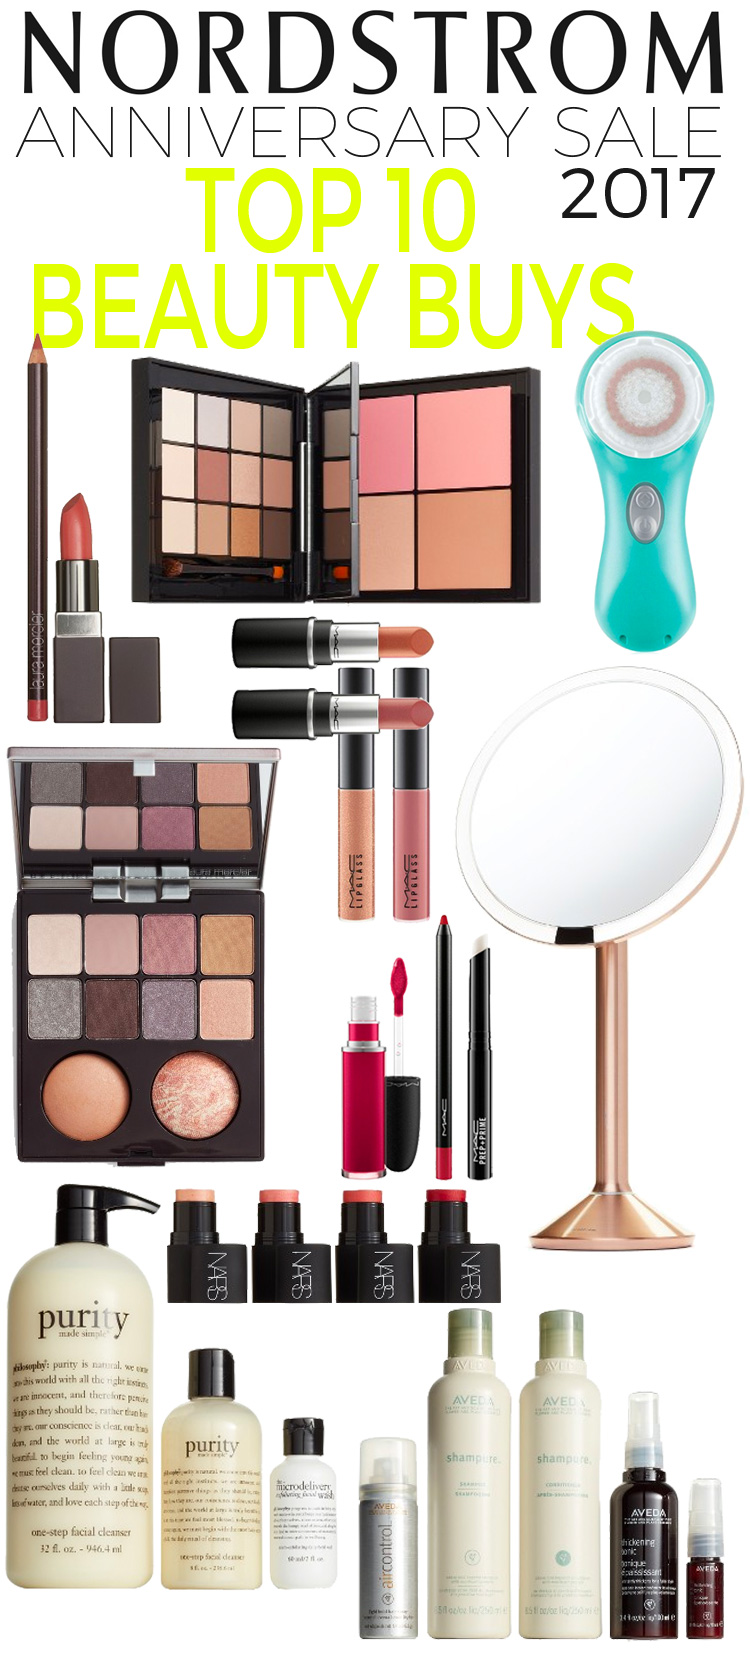 Top 10 Nordstrom Anniversary Sale Beauty Buys 2017